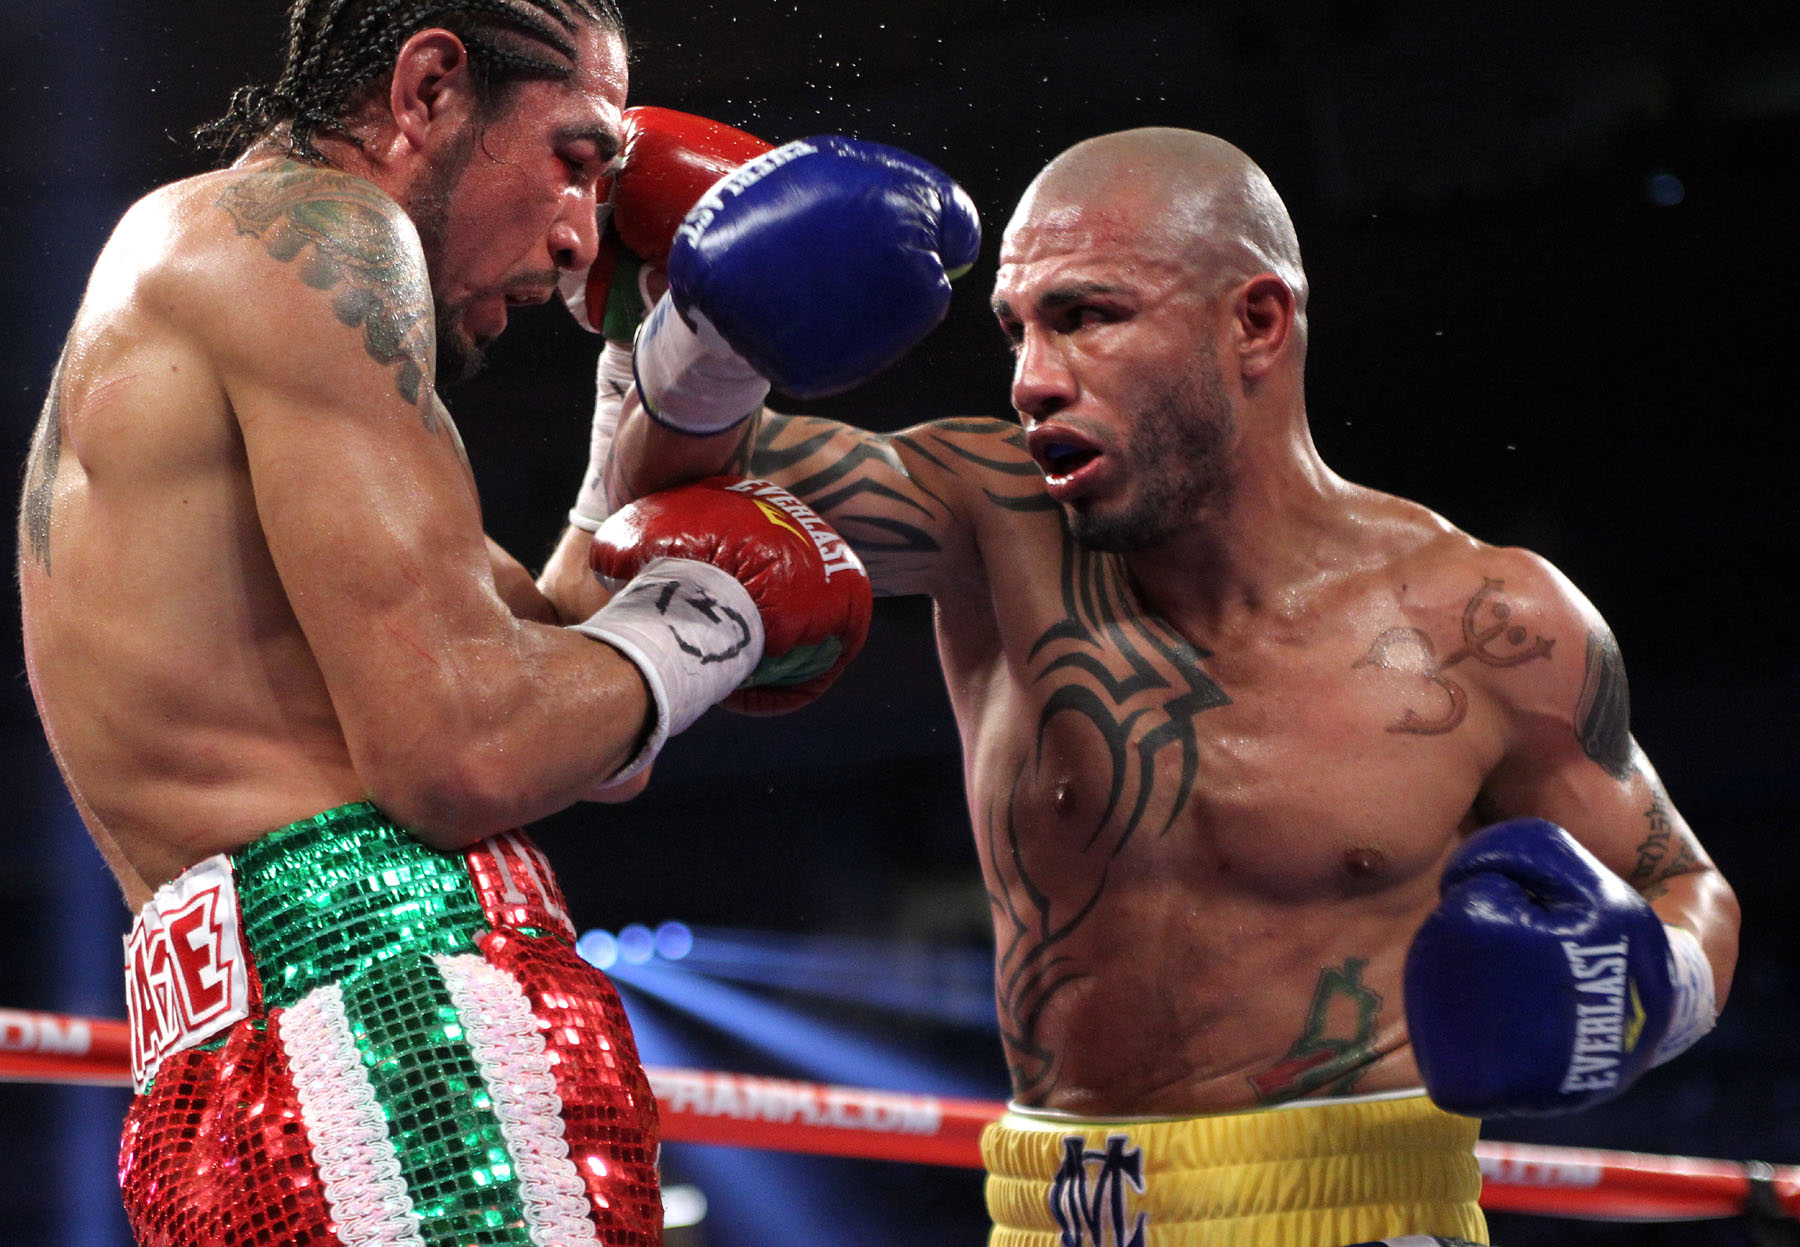 Cotto Margarito 111203 006a2 - Grudge Matches are Boxing Gold